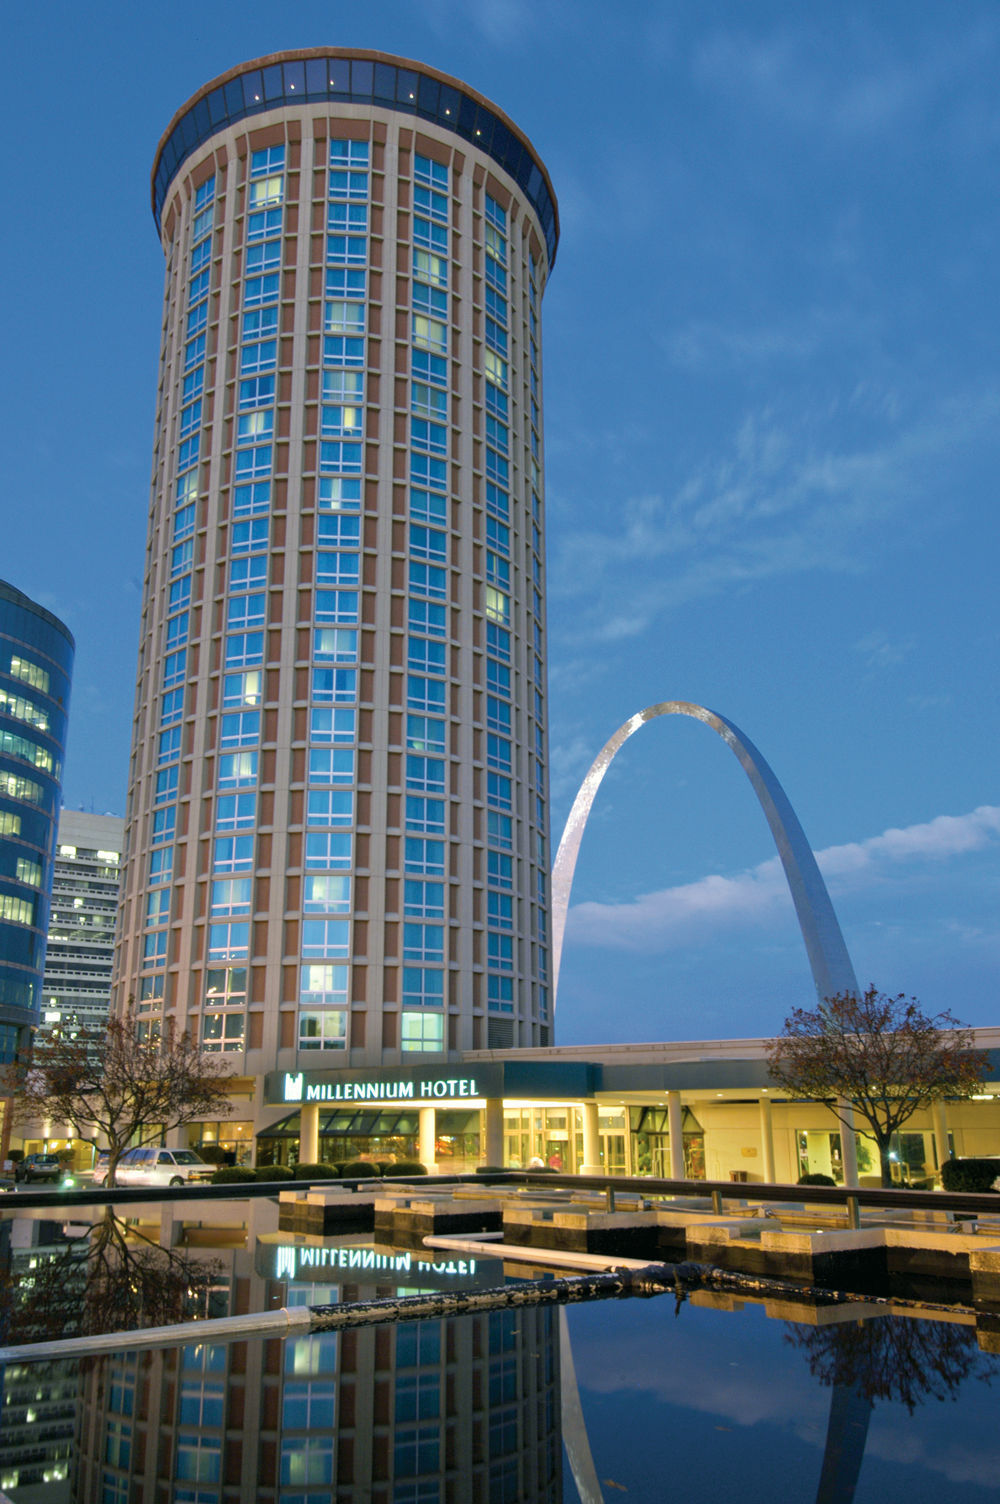 Hotel Millennium Saint Louis Mo 3 United States From Us 127 Booked